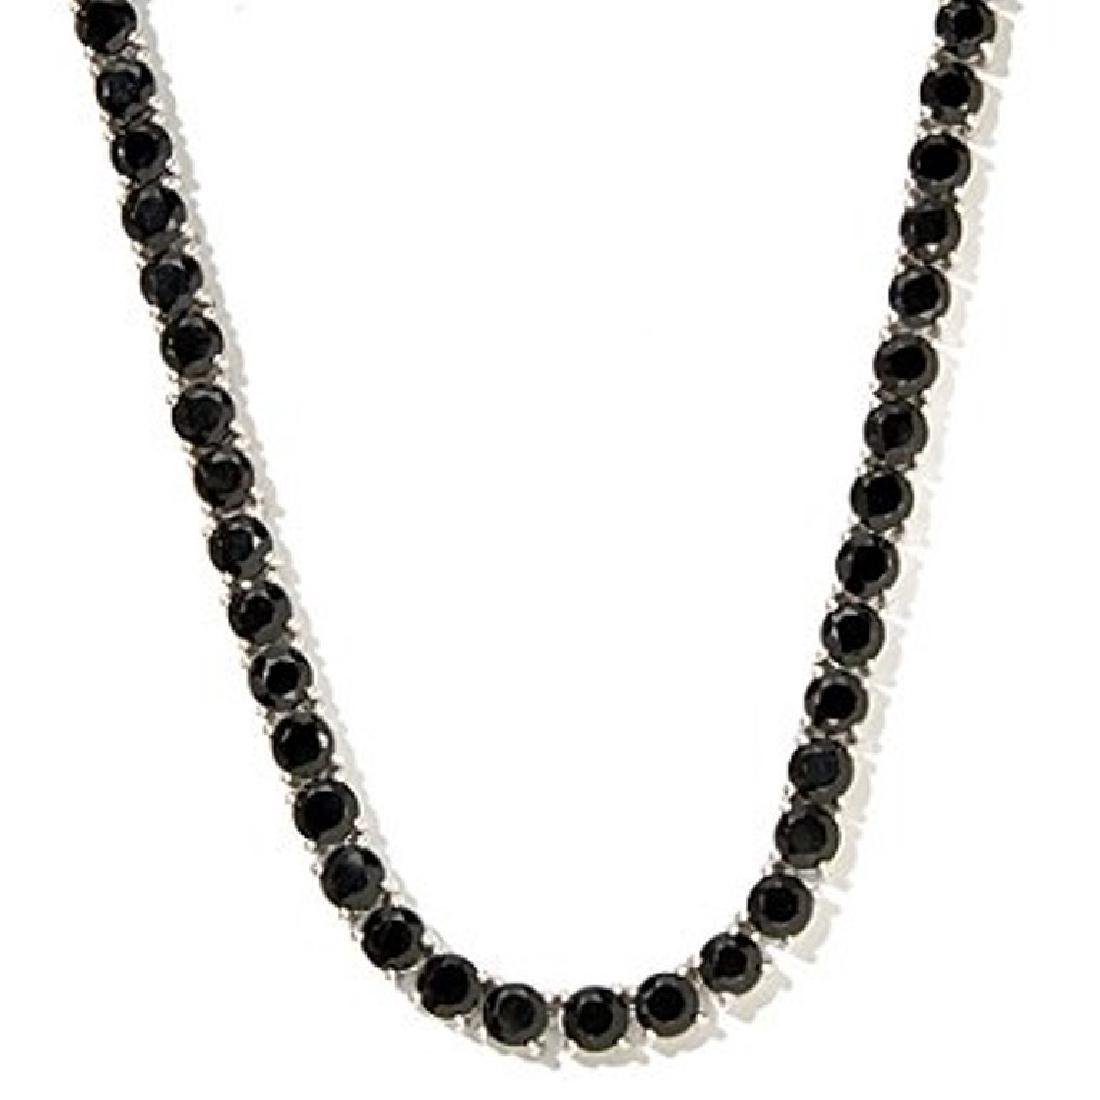 Diamond Polished Black Spinel necklace - 170 carat